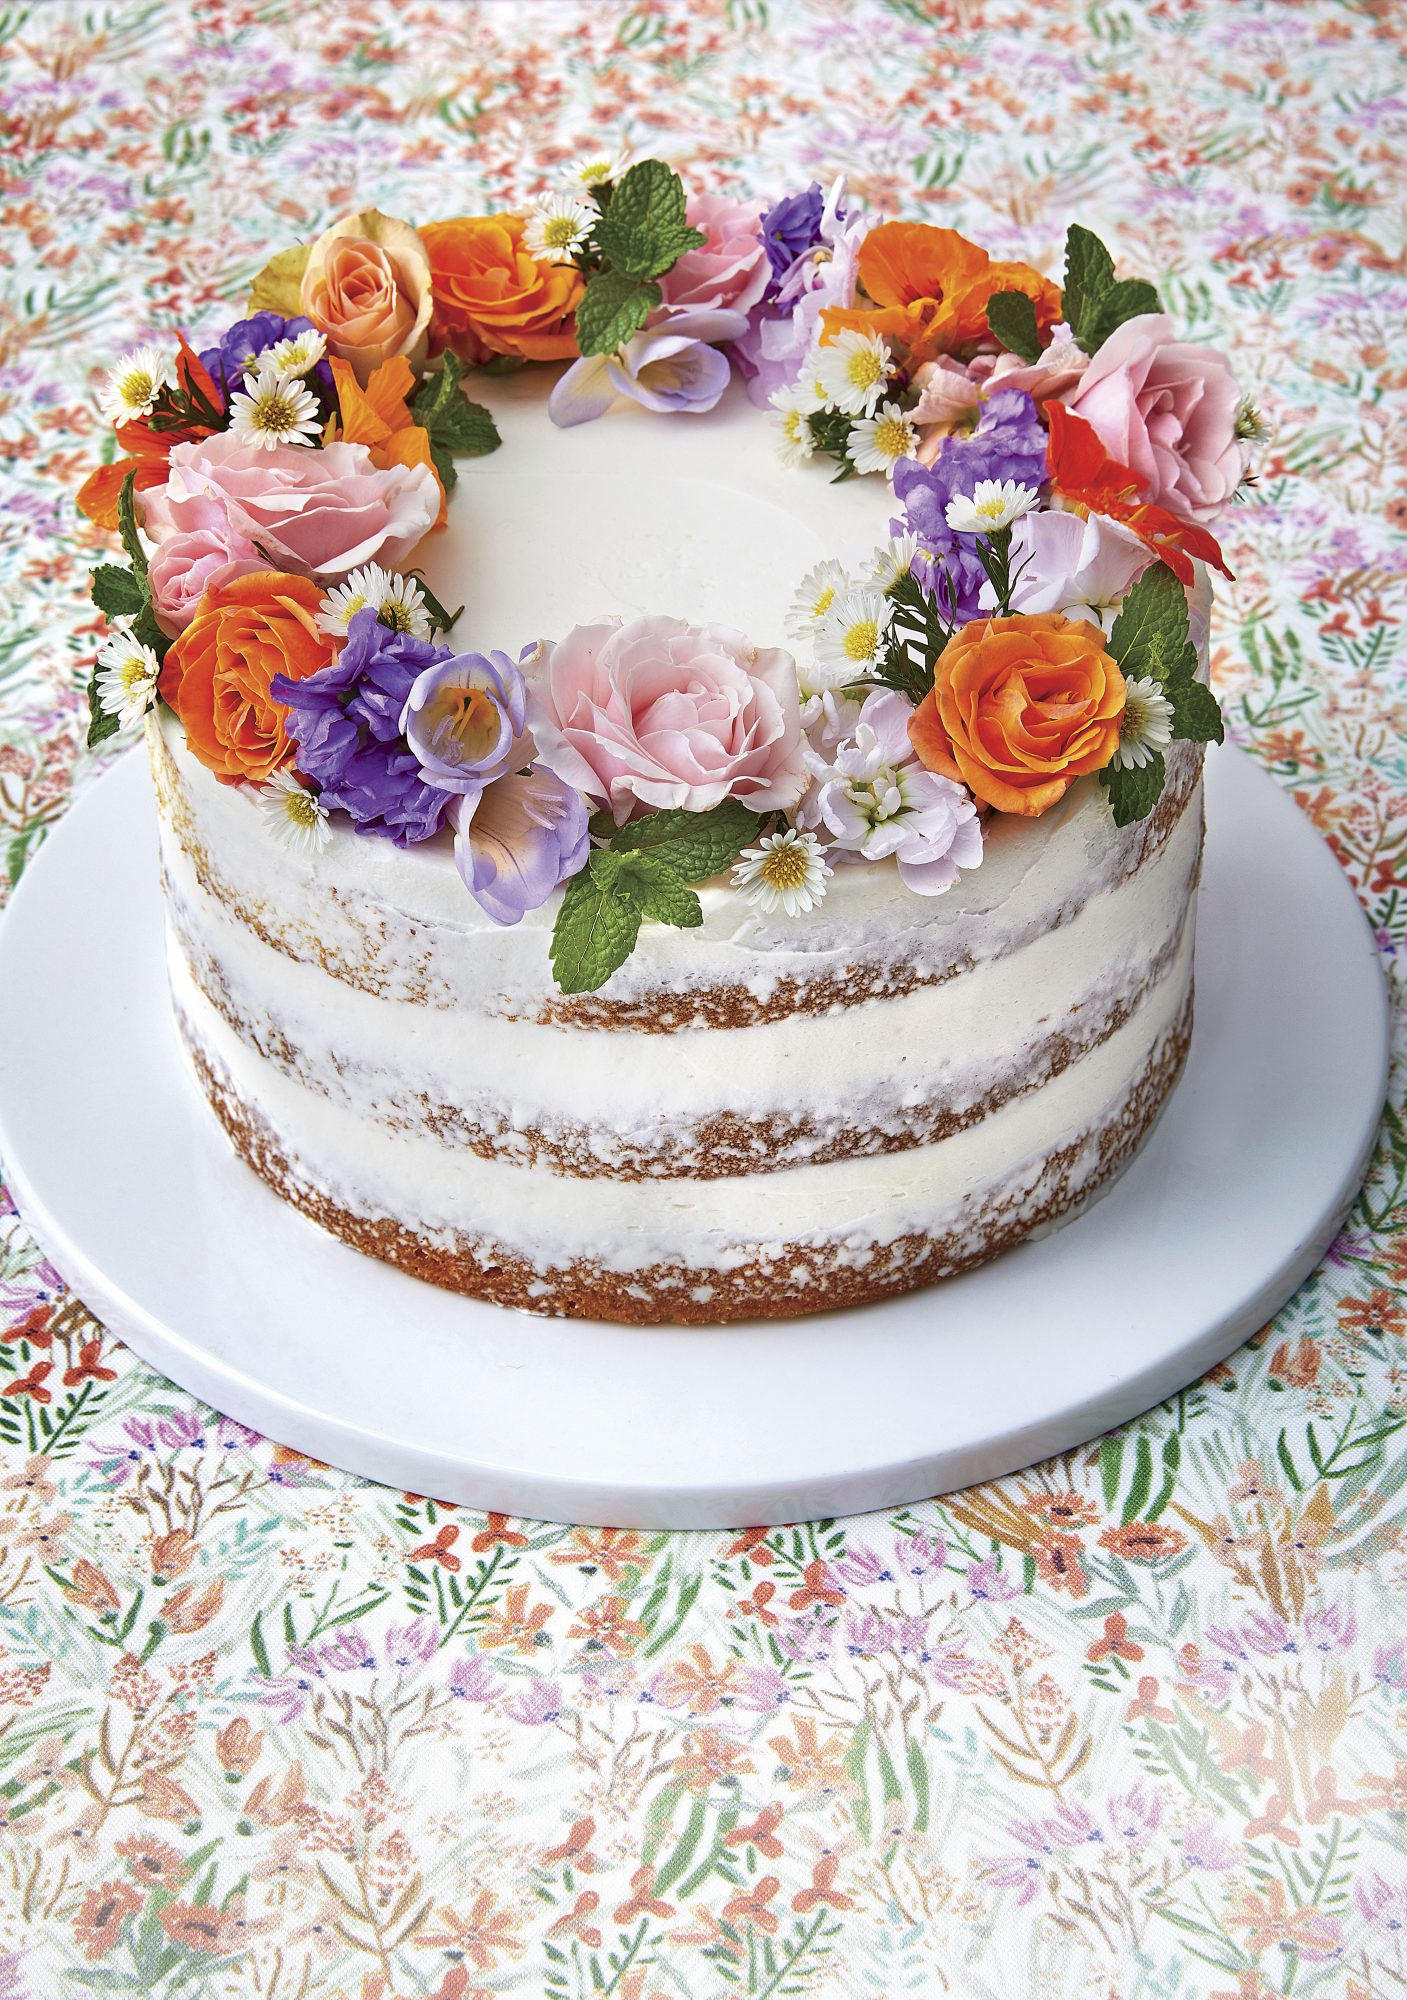 Lemon Naked Cake Recipe With Flower Crown